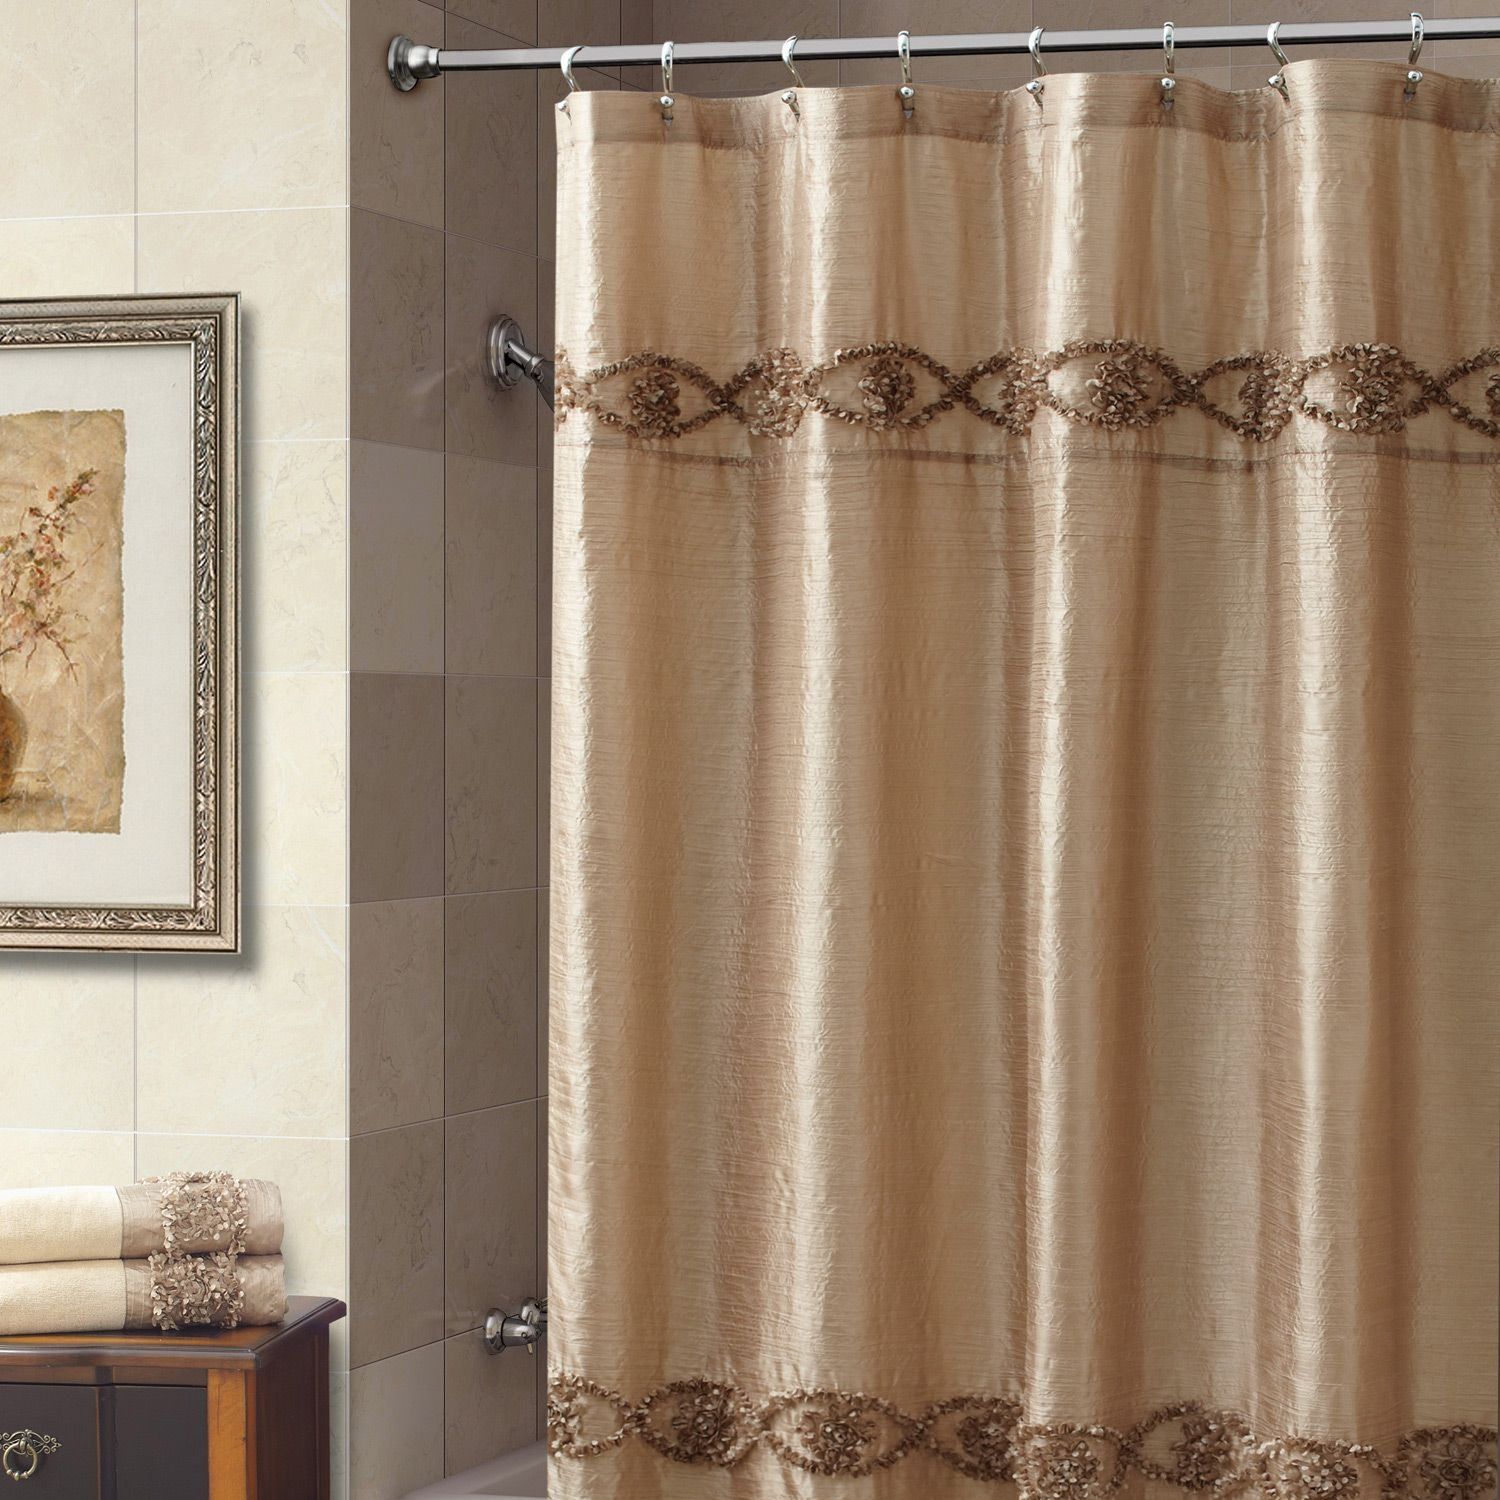 Shower Curtain Liner 72 X 80 • Shower Curtains Ideas